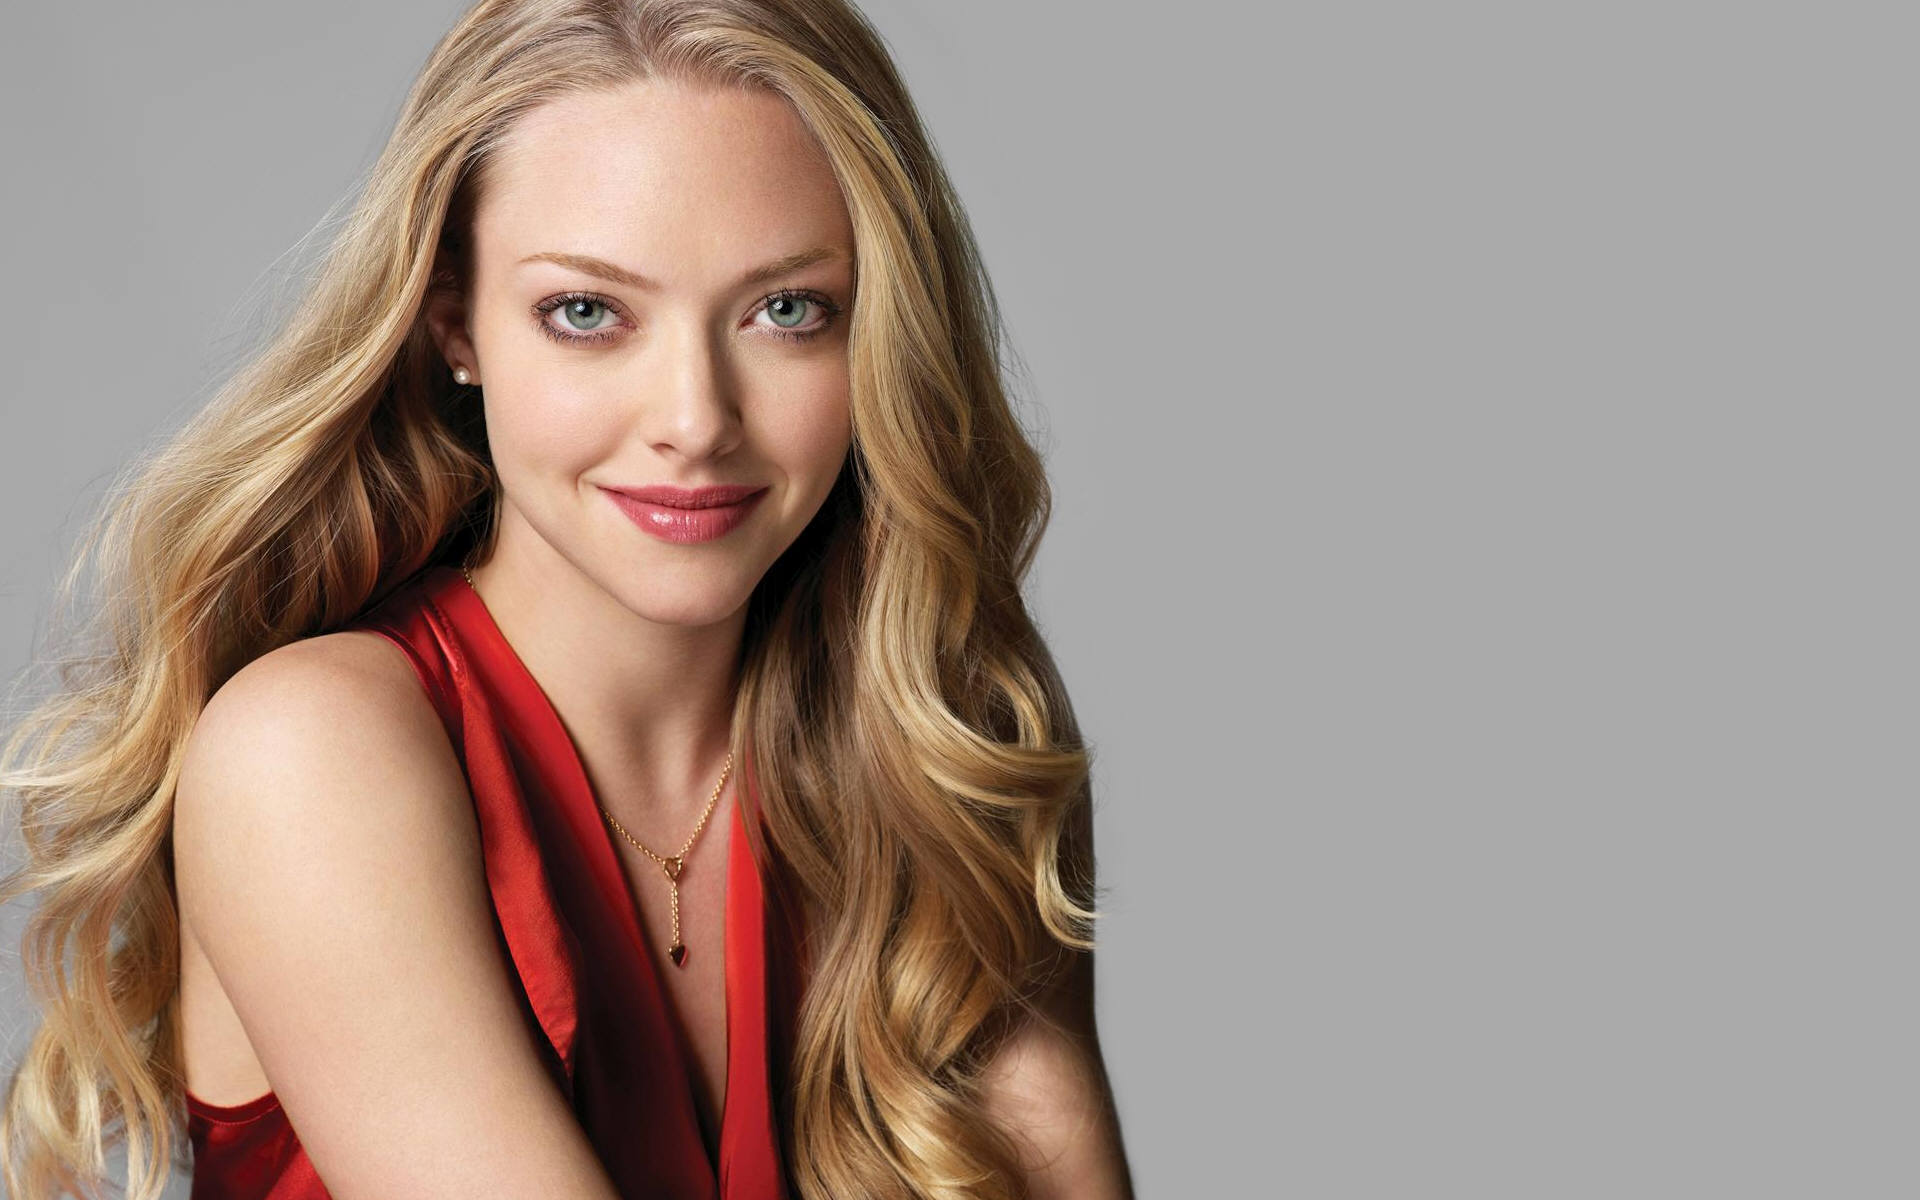 amanda-seyfried-wallpapers